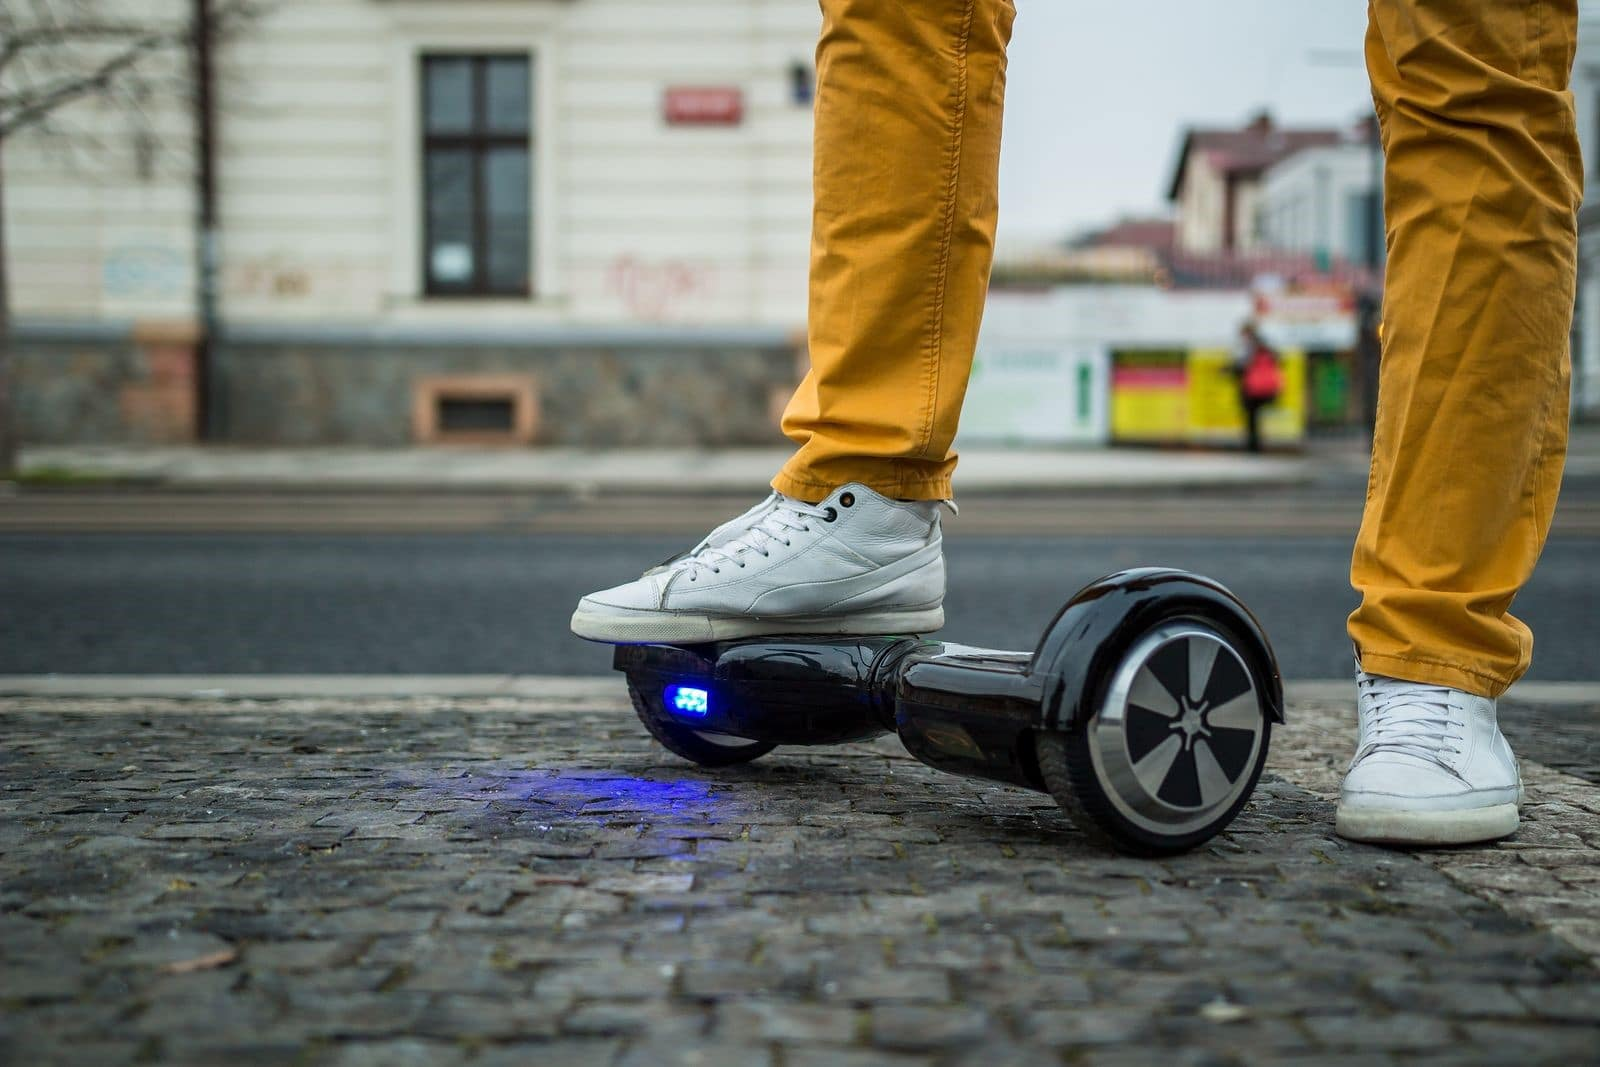 An Oklahoma City Personal Injury Attorney Helps Victims of Hoverboards